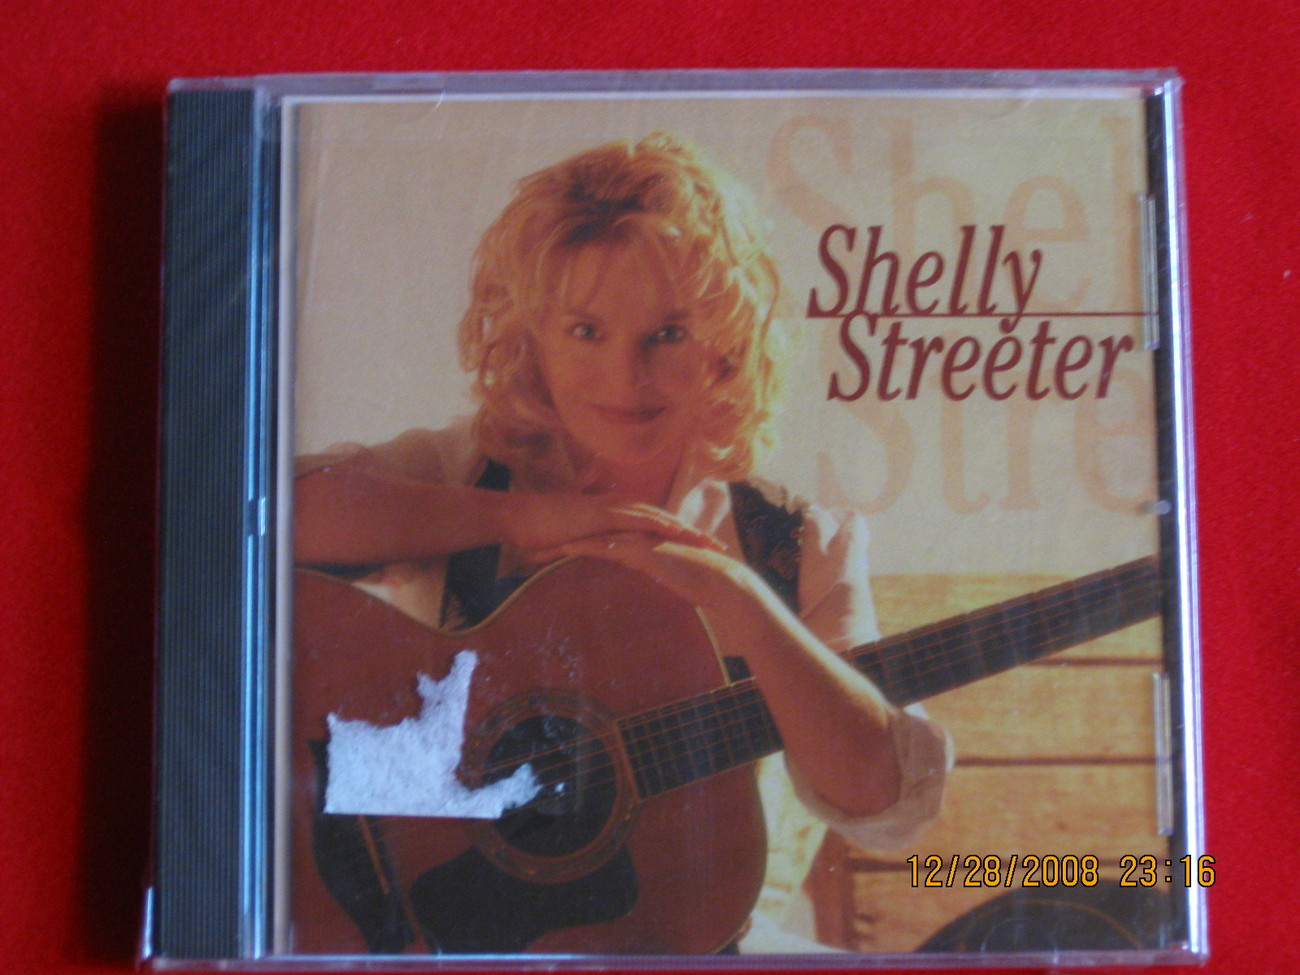 Shelly streeter img 0535